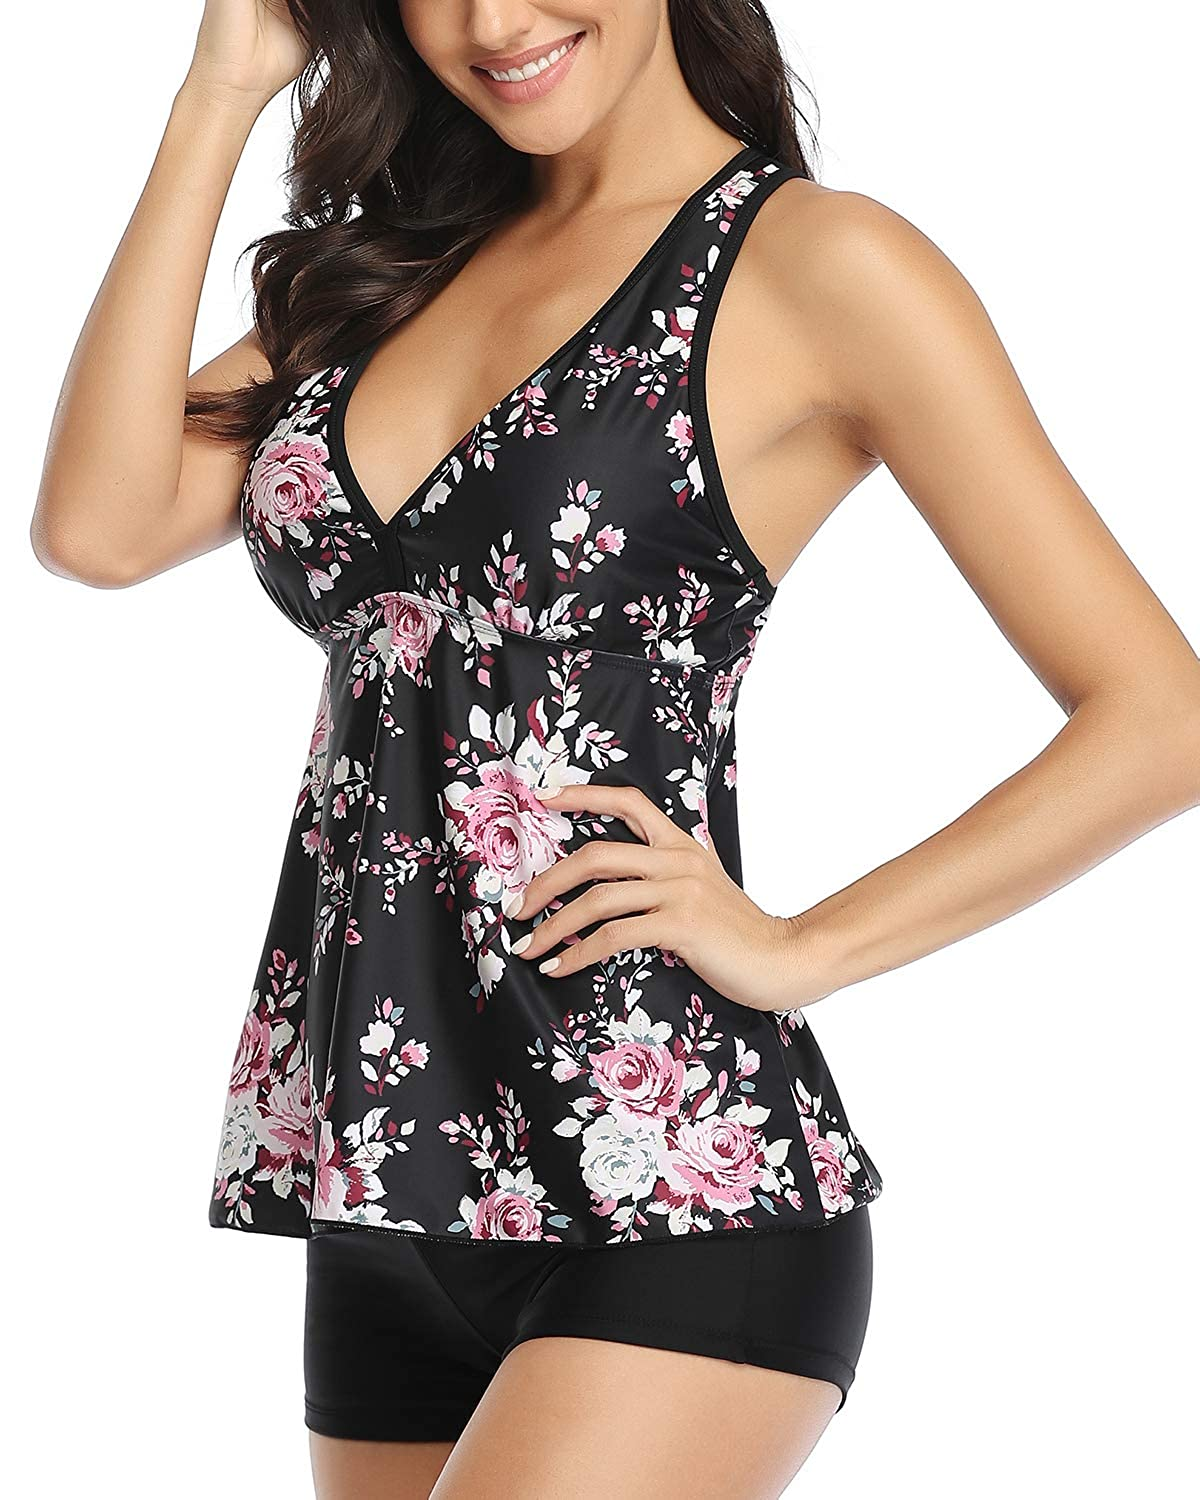 Tempt Me Women 2 Piece Racerback Printed Top with Boyshorts Tankini Bathing Suit